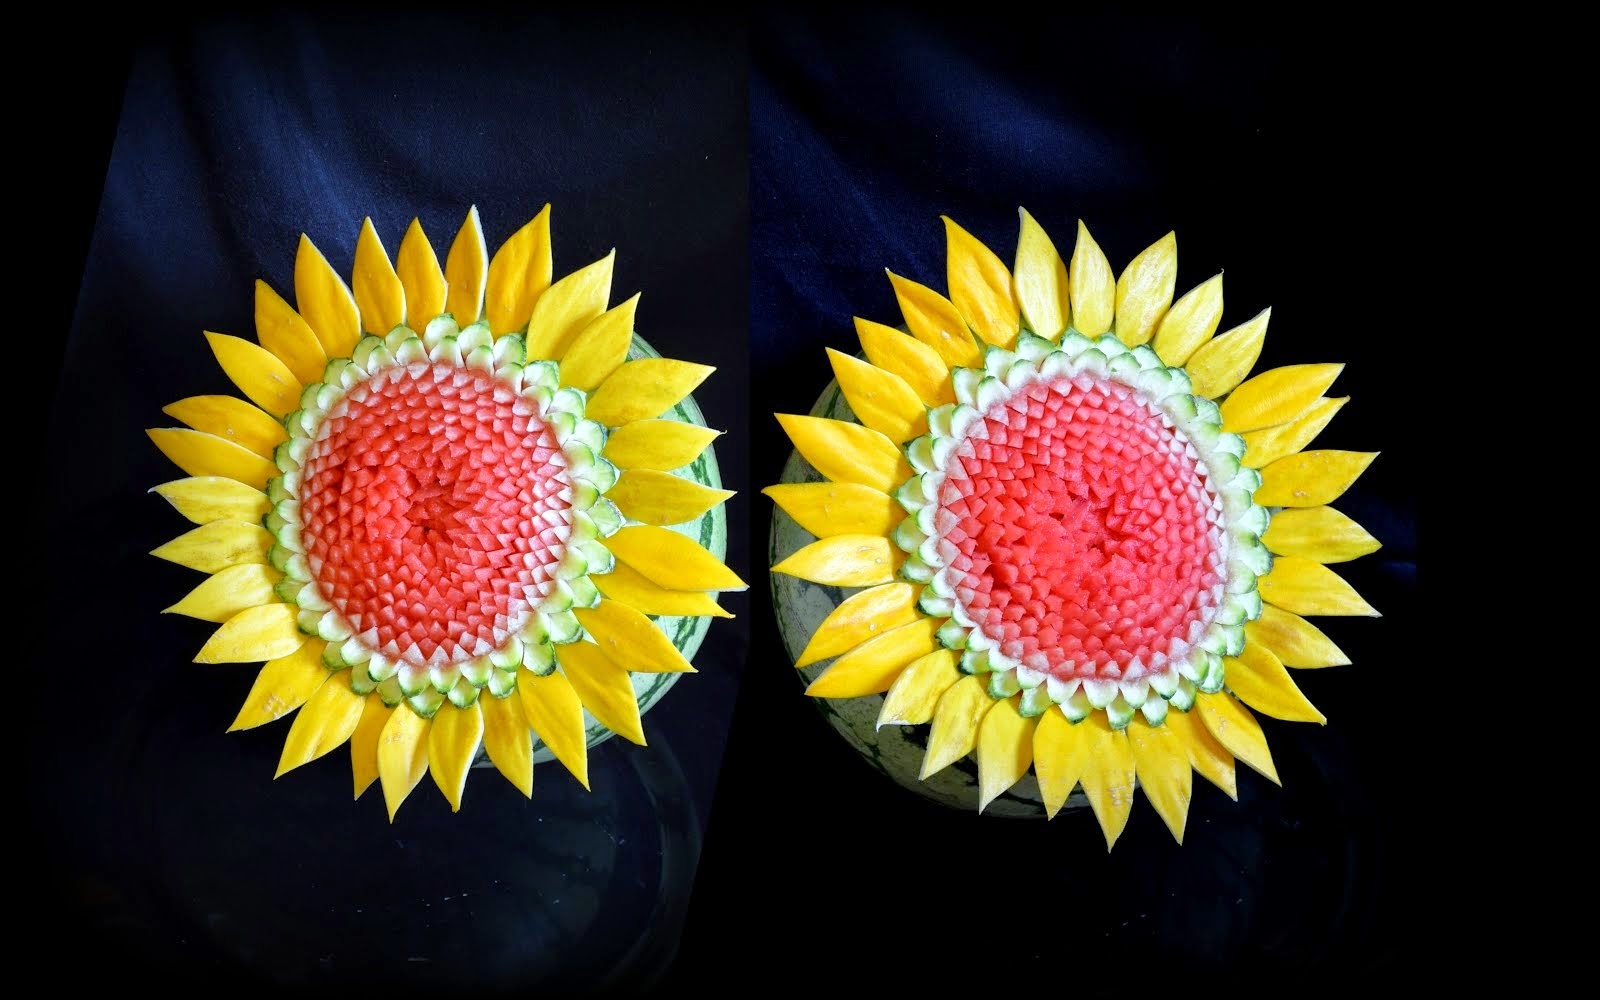 Watermelon Sunflowers